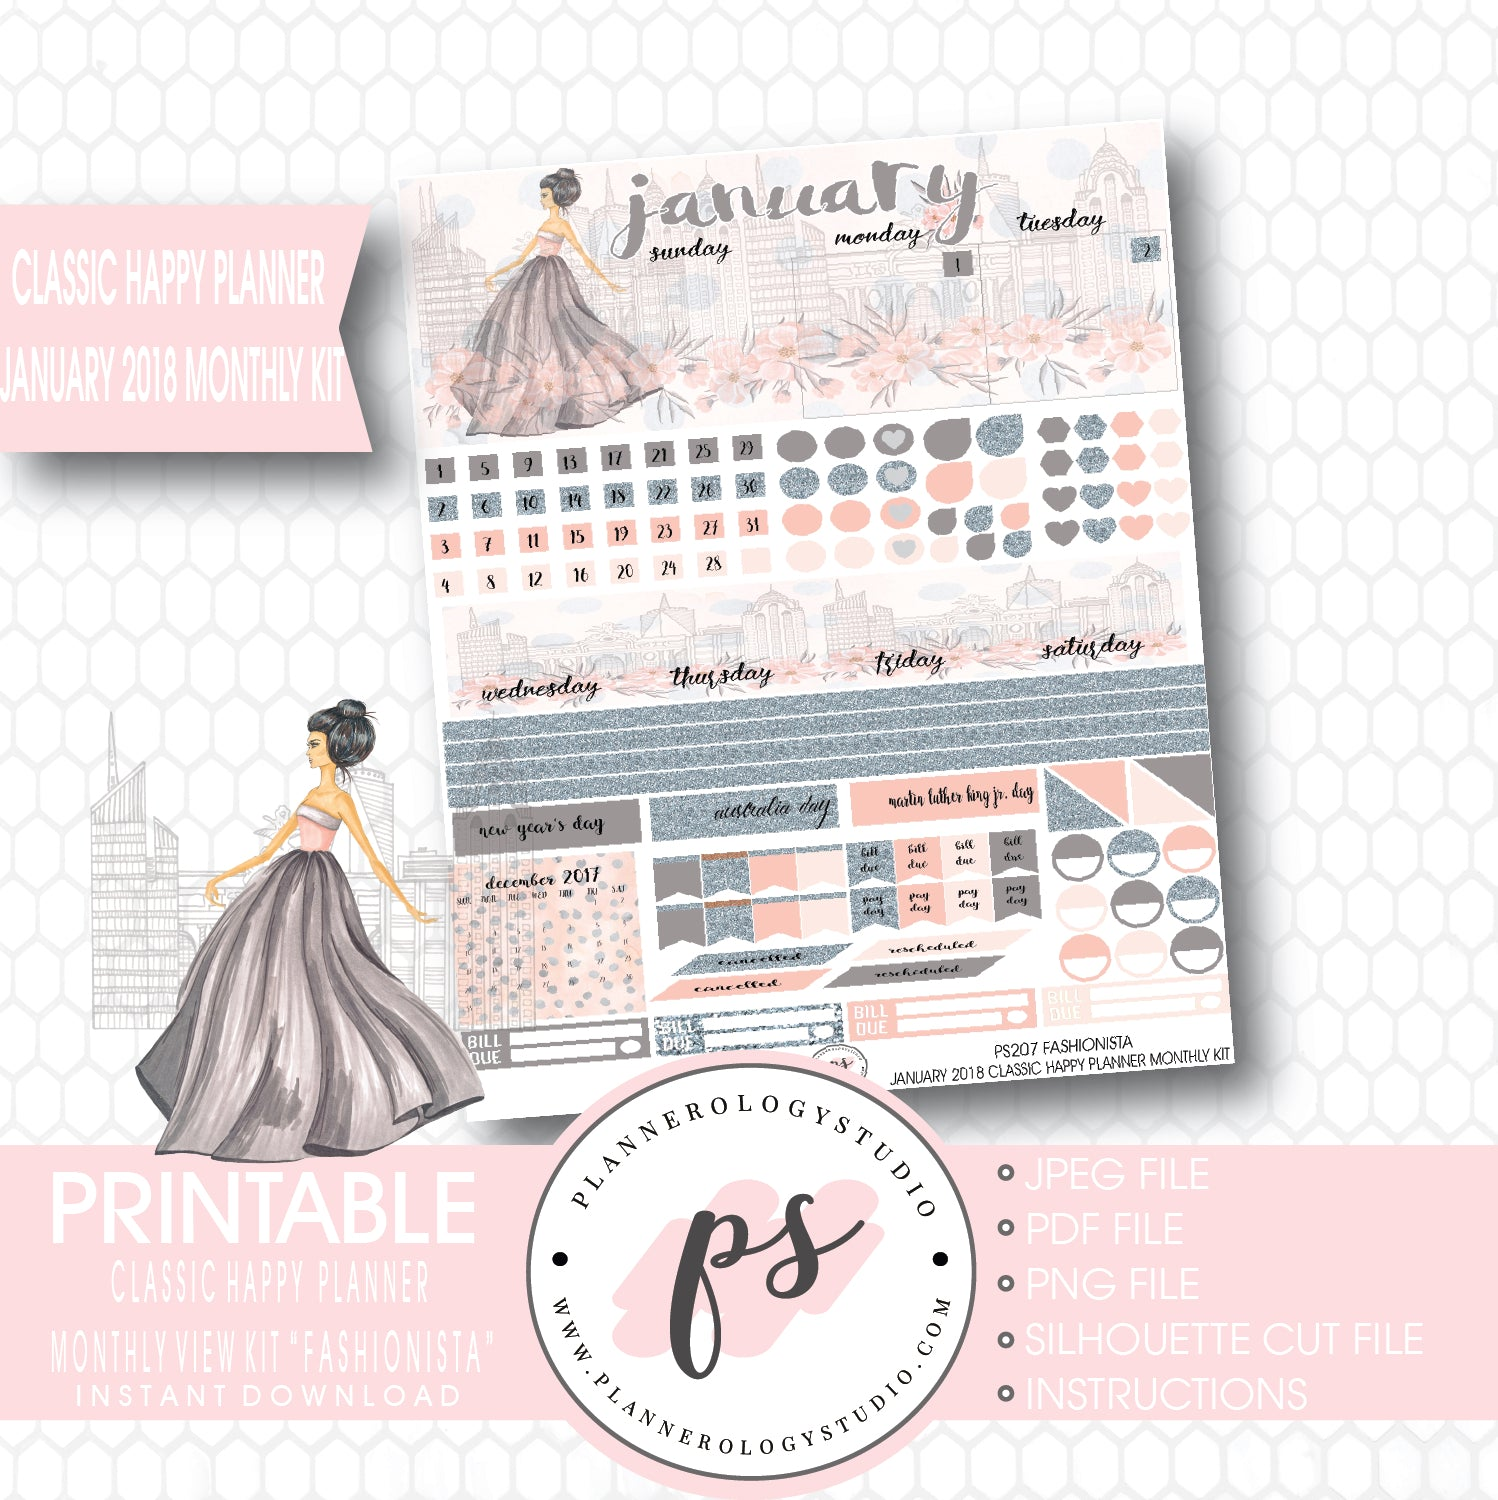 picture about Happy Planner Free Printable Stickers named Fashionista January 2018 Every month See Package Printable Planner